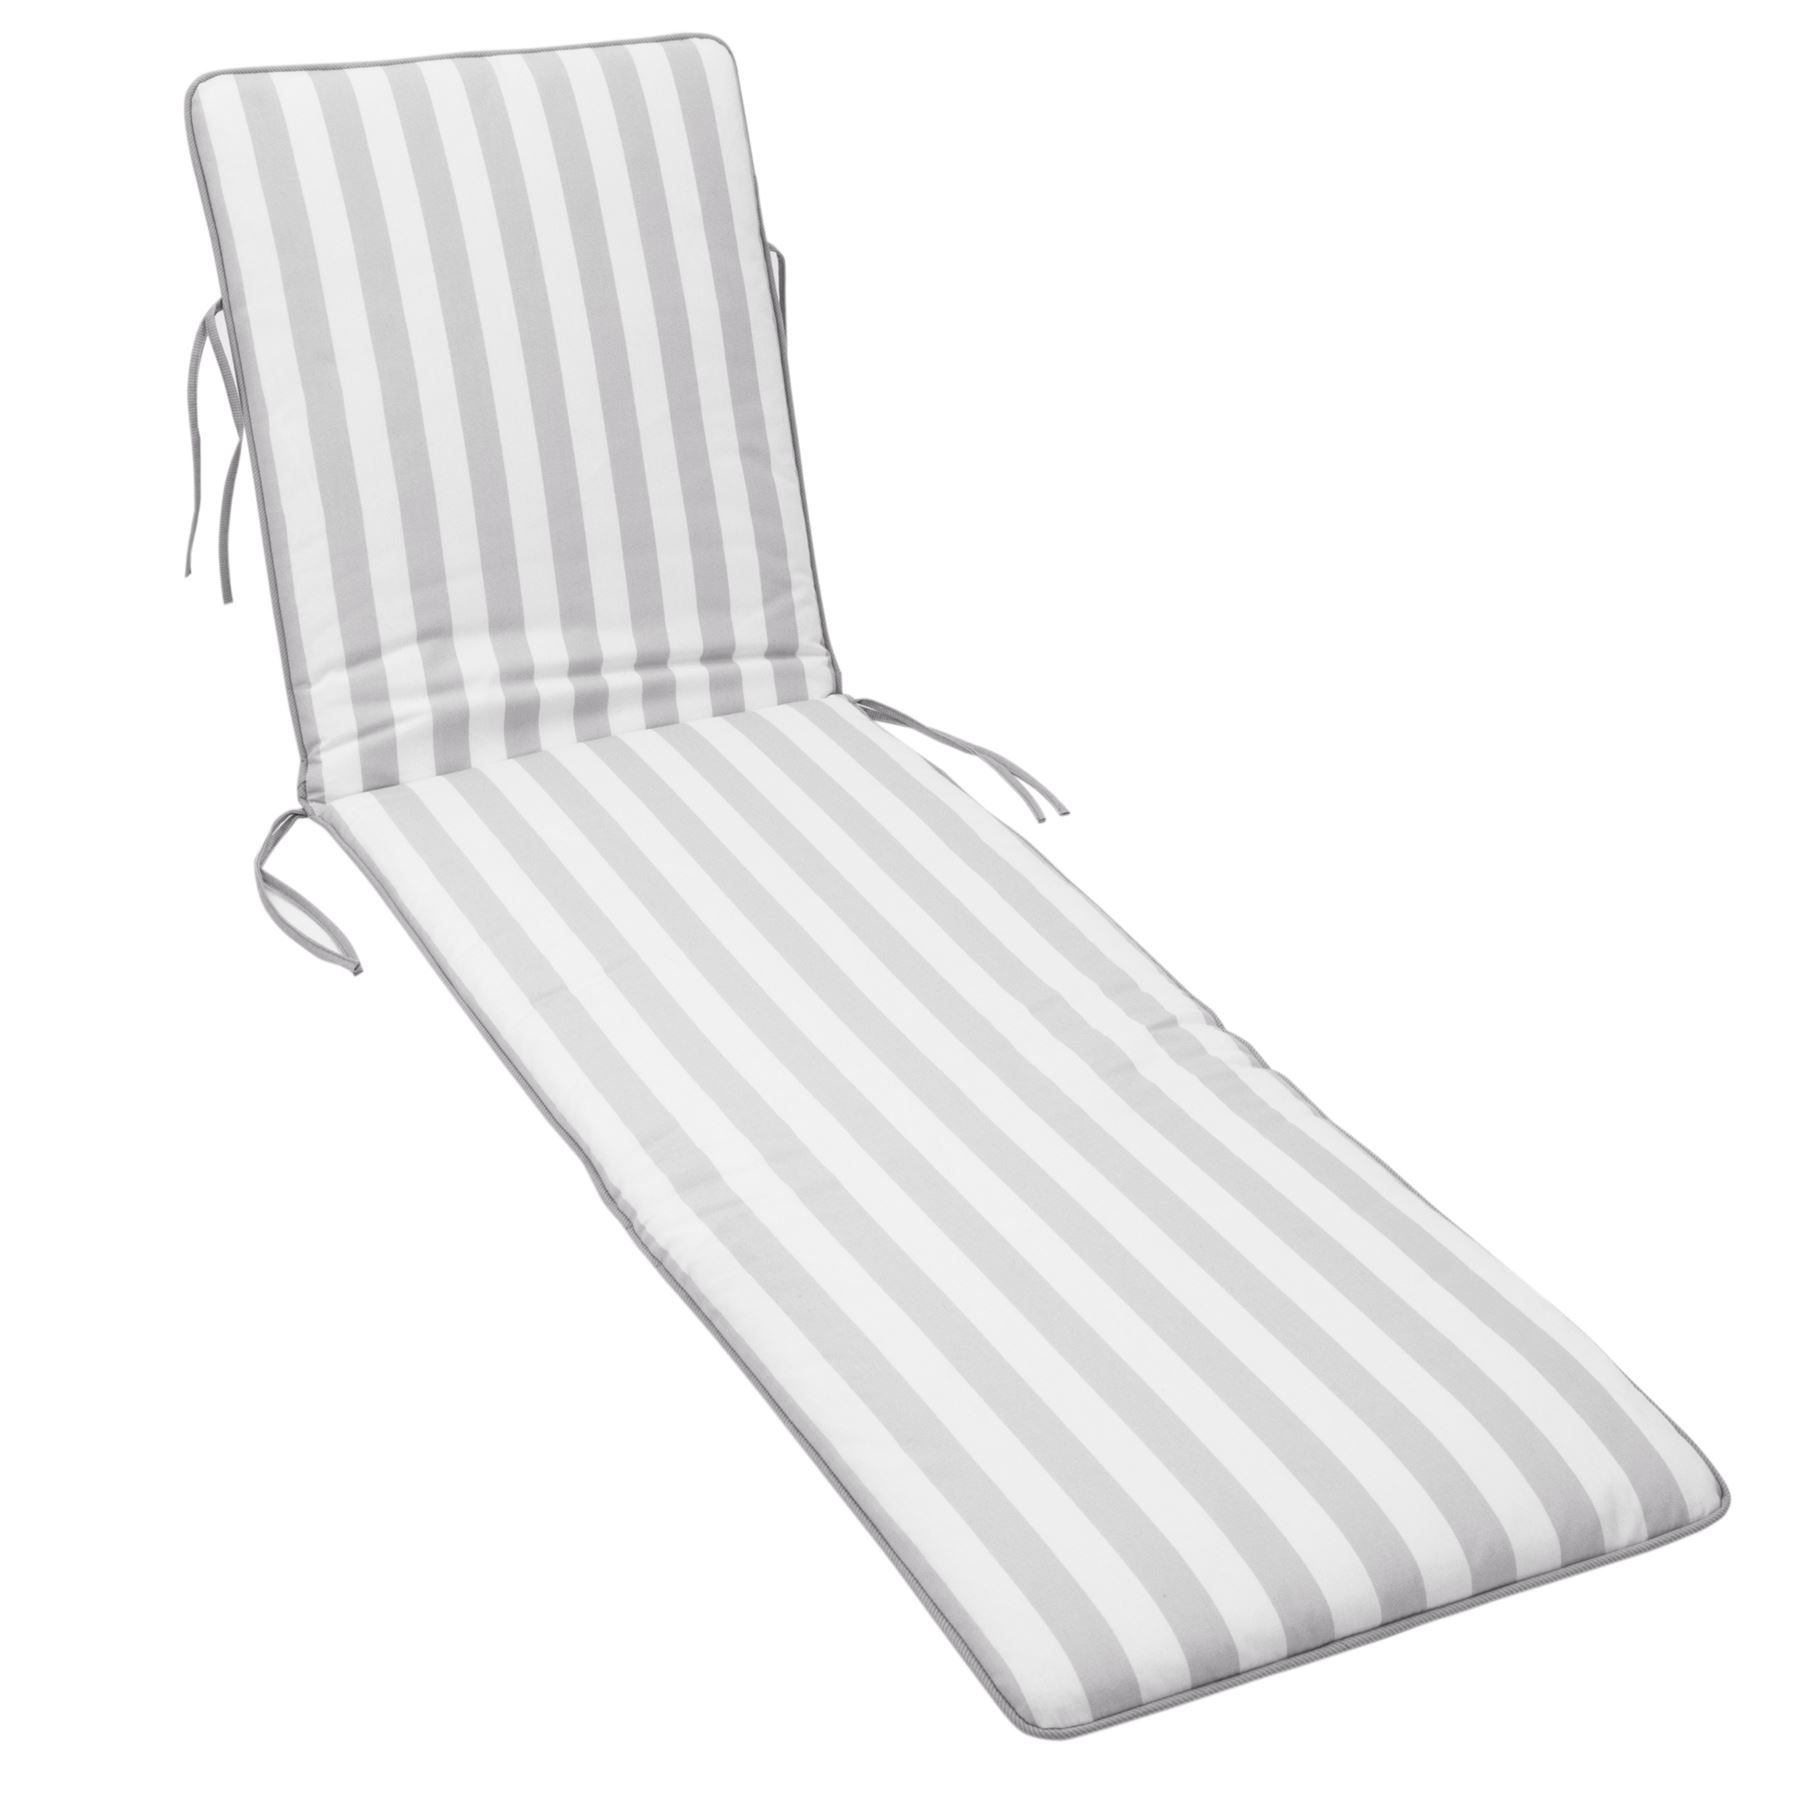 Replacement Cushion Pad For Outdoor Garden Sun Lounger